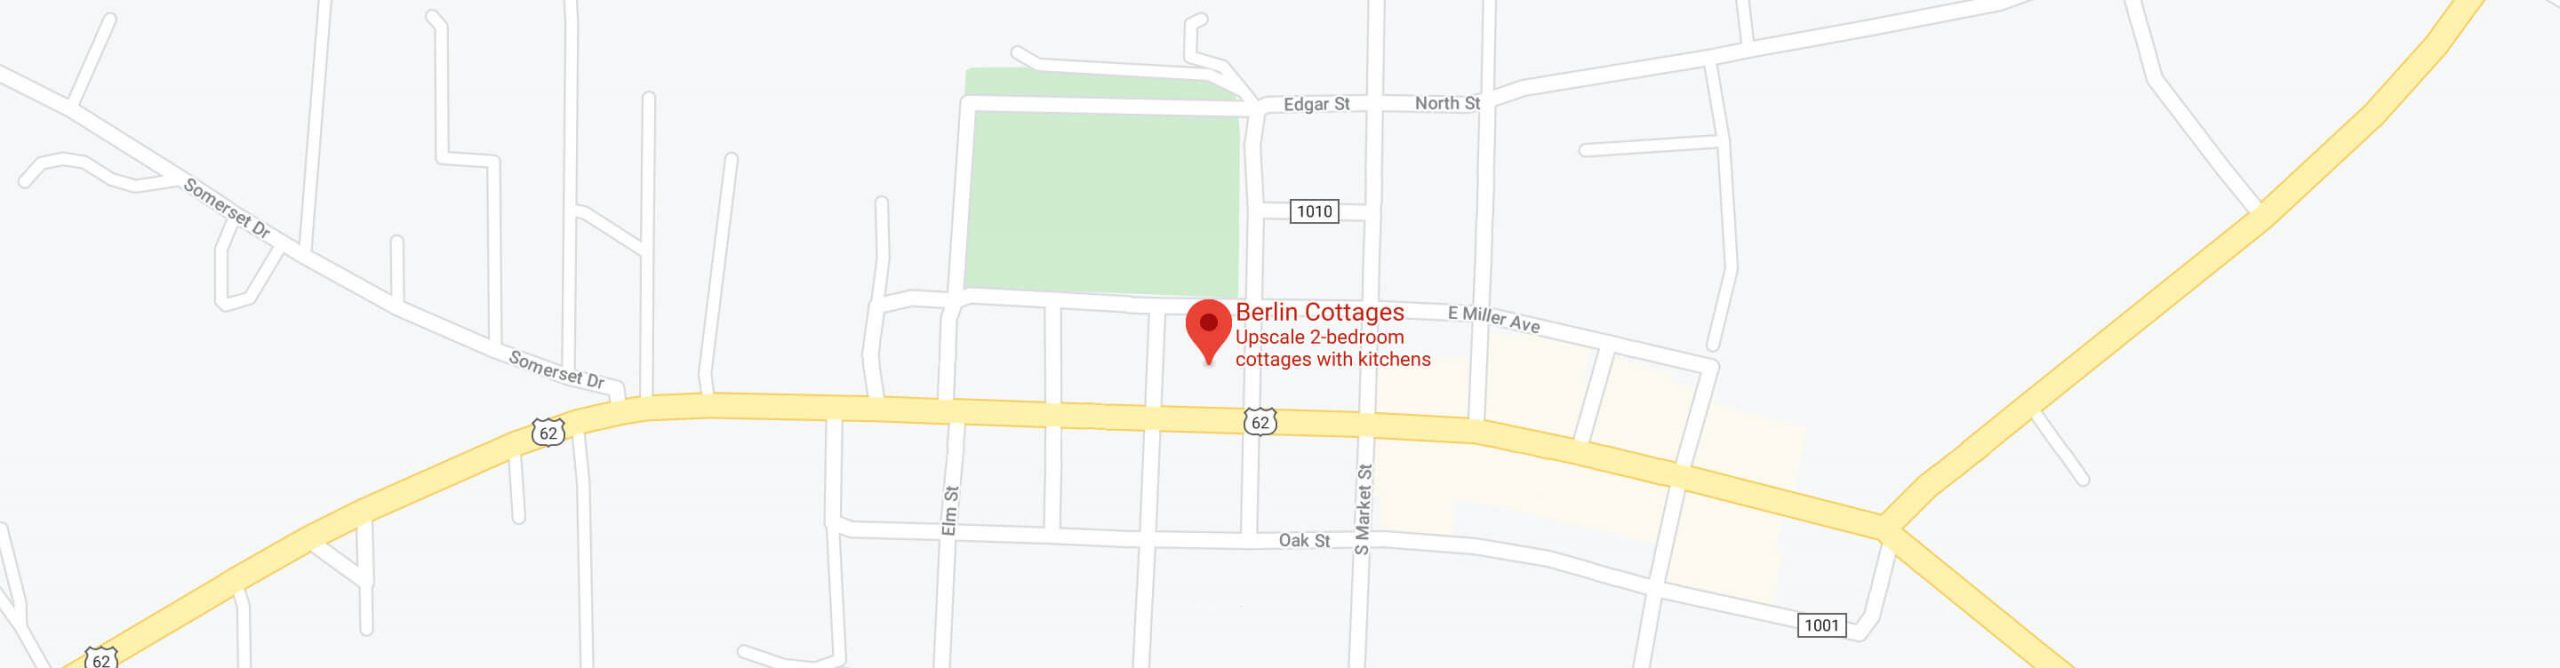 Map showing Berlin Cottages